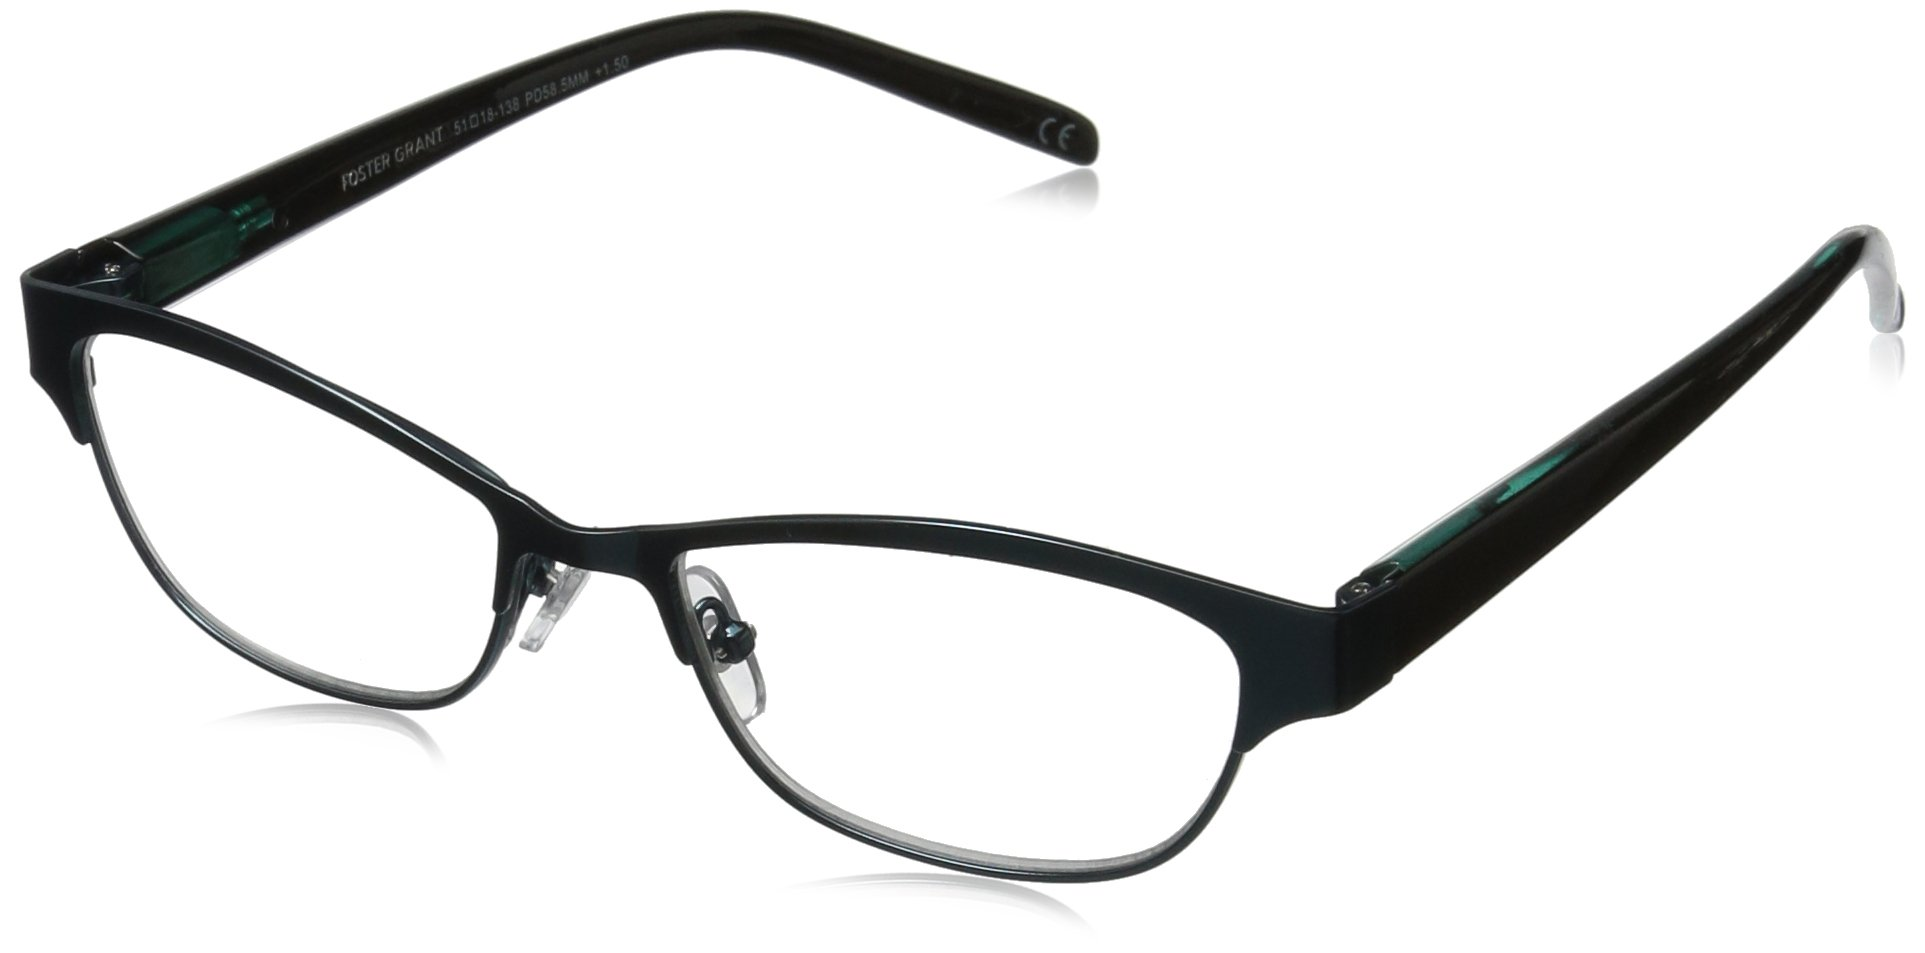 Foster Grant Women's Sage 1017559-125.COM Cateye Reading Glasses, Teal, 1.25